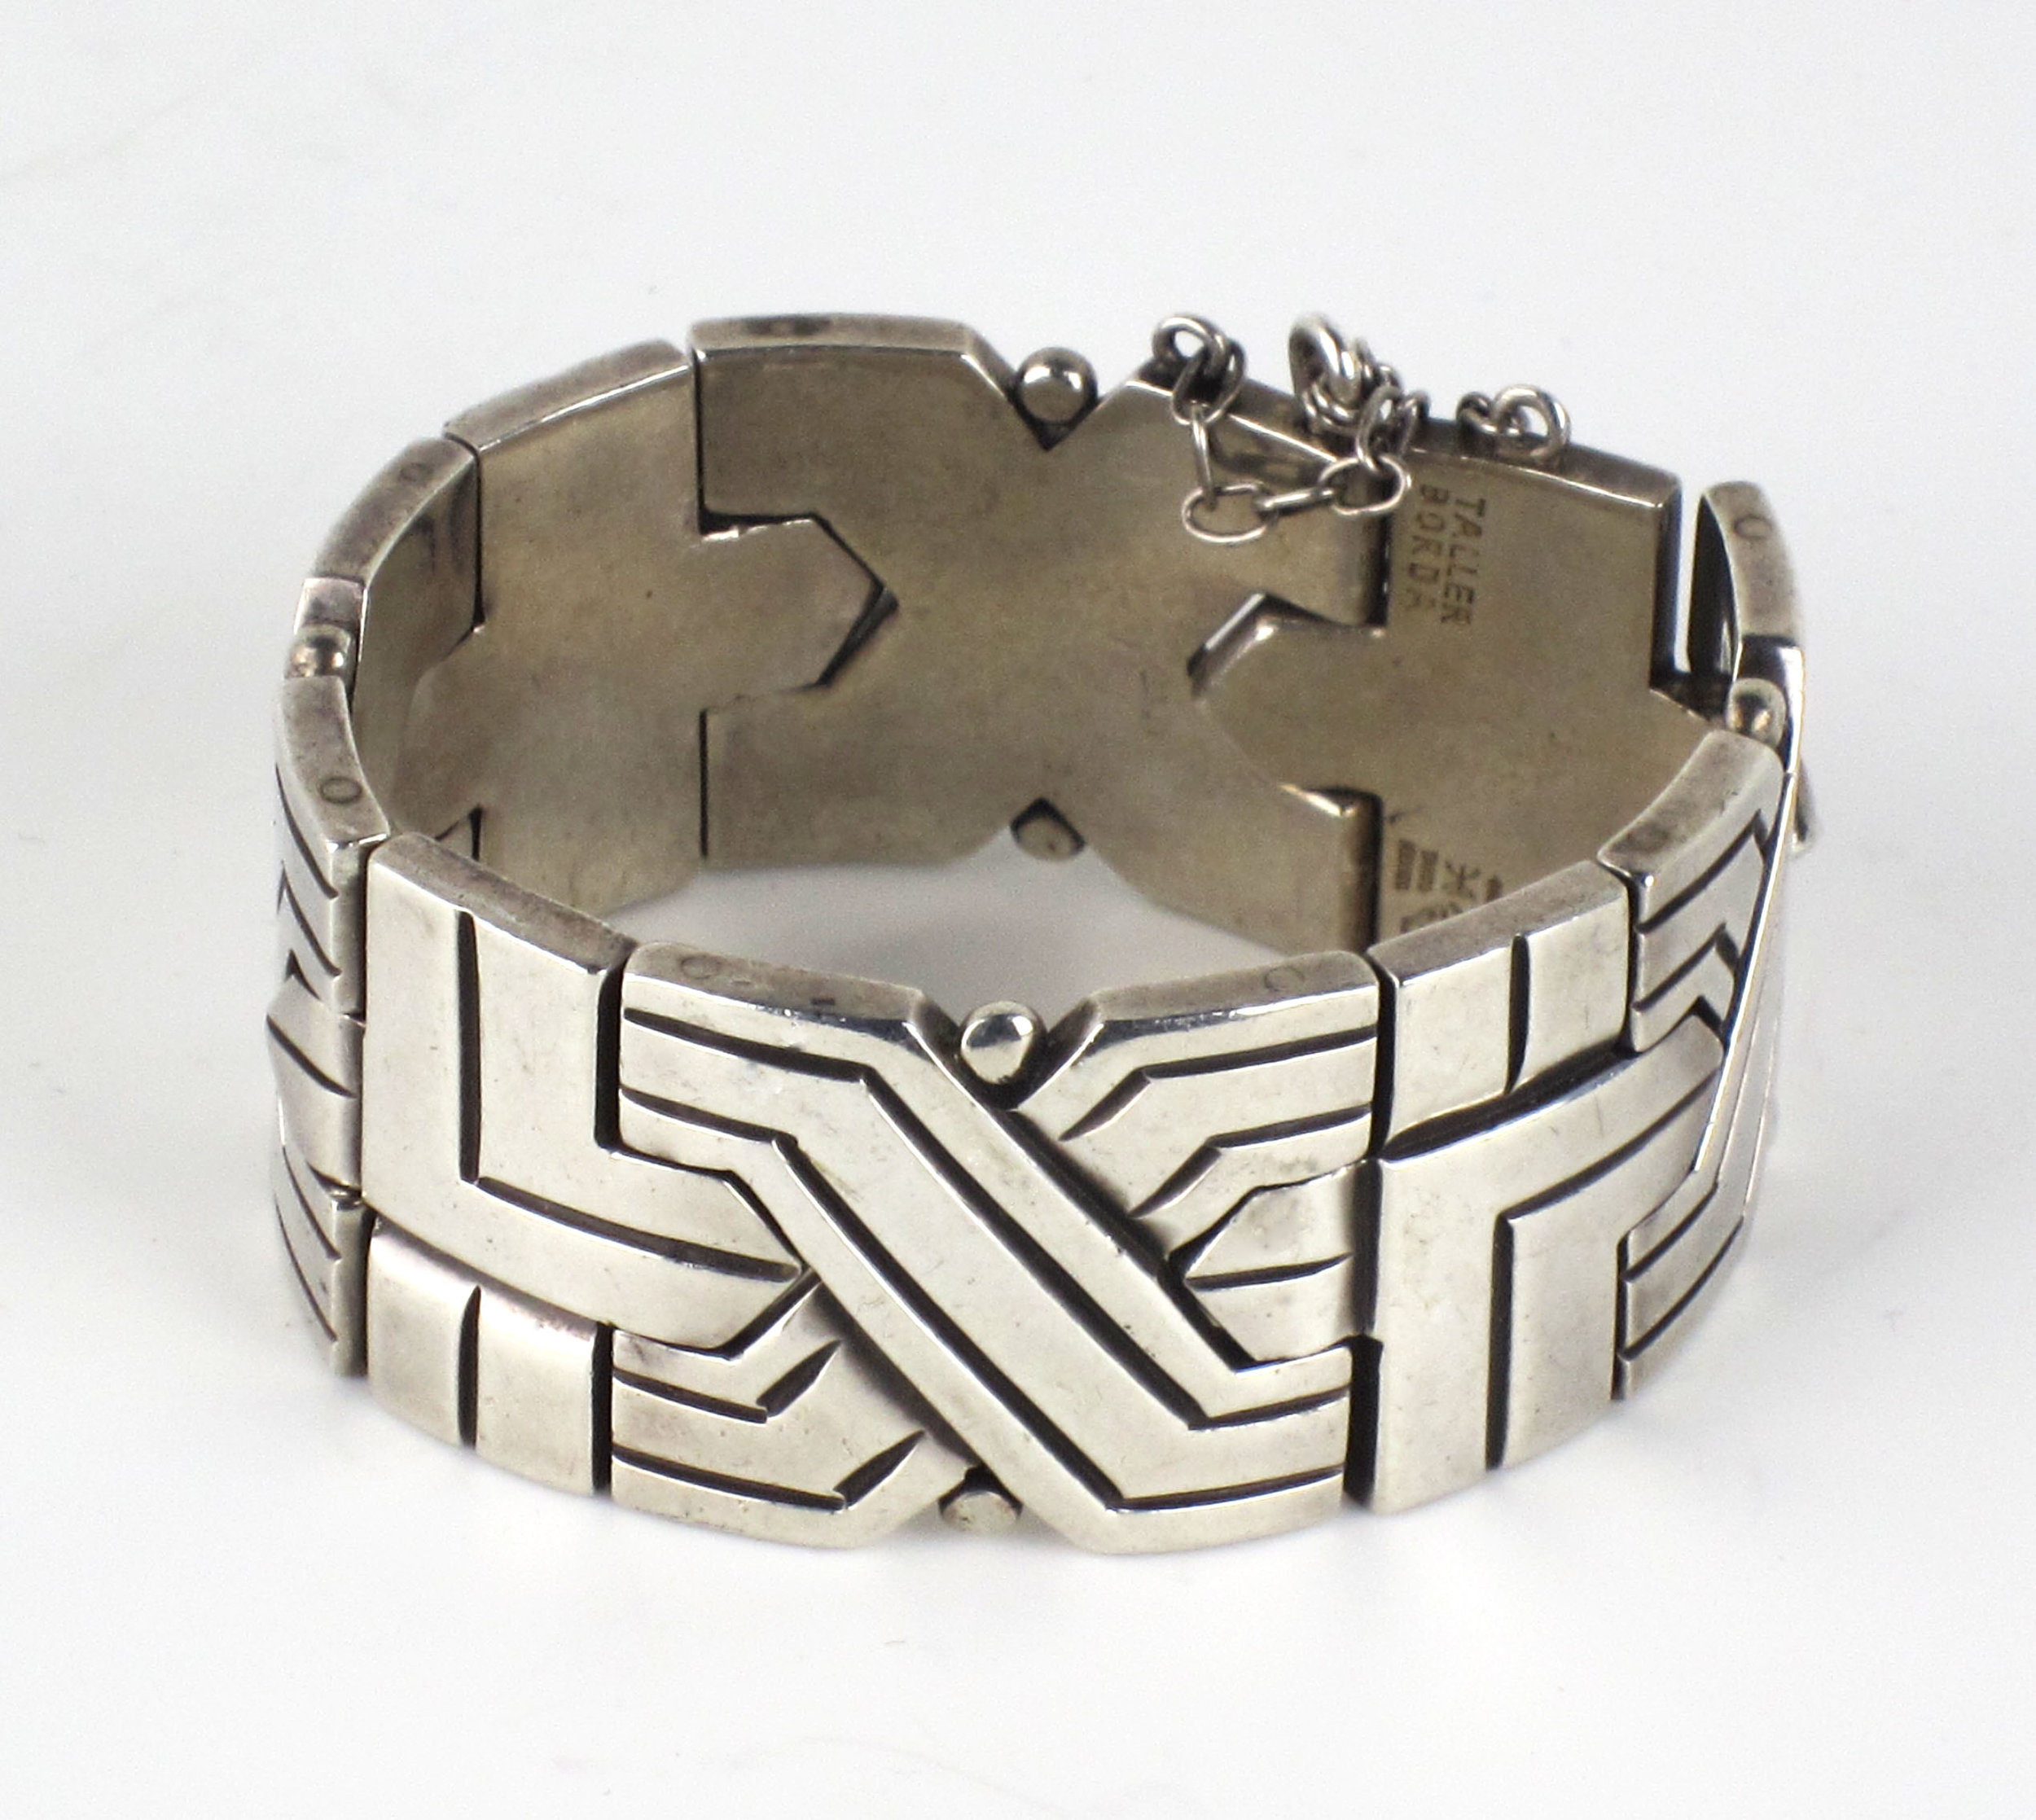 http://www.marcyburns.com/taxco-jewelry-collection/hector-aguilar-link-bracelet